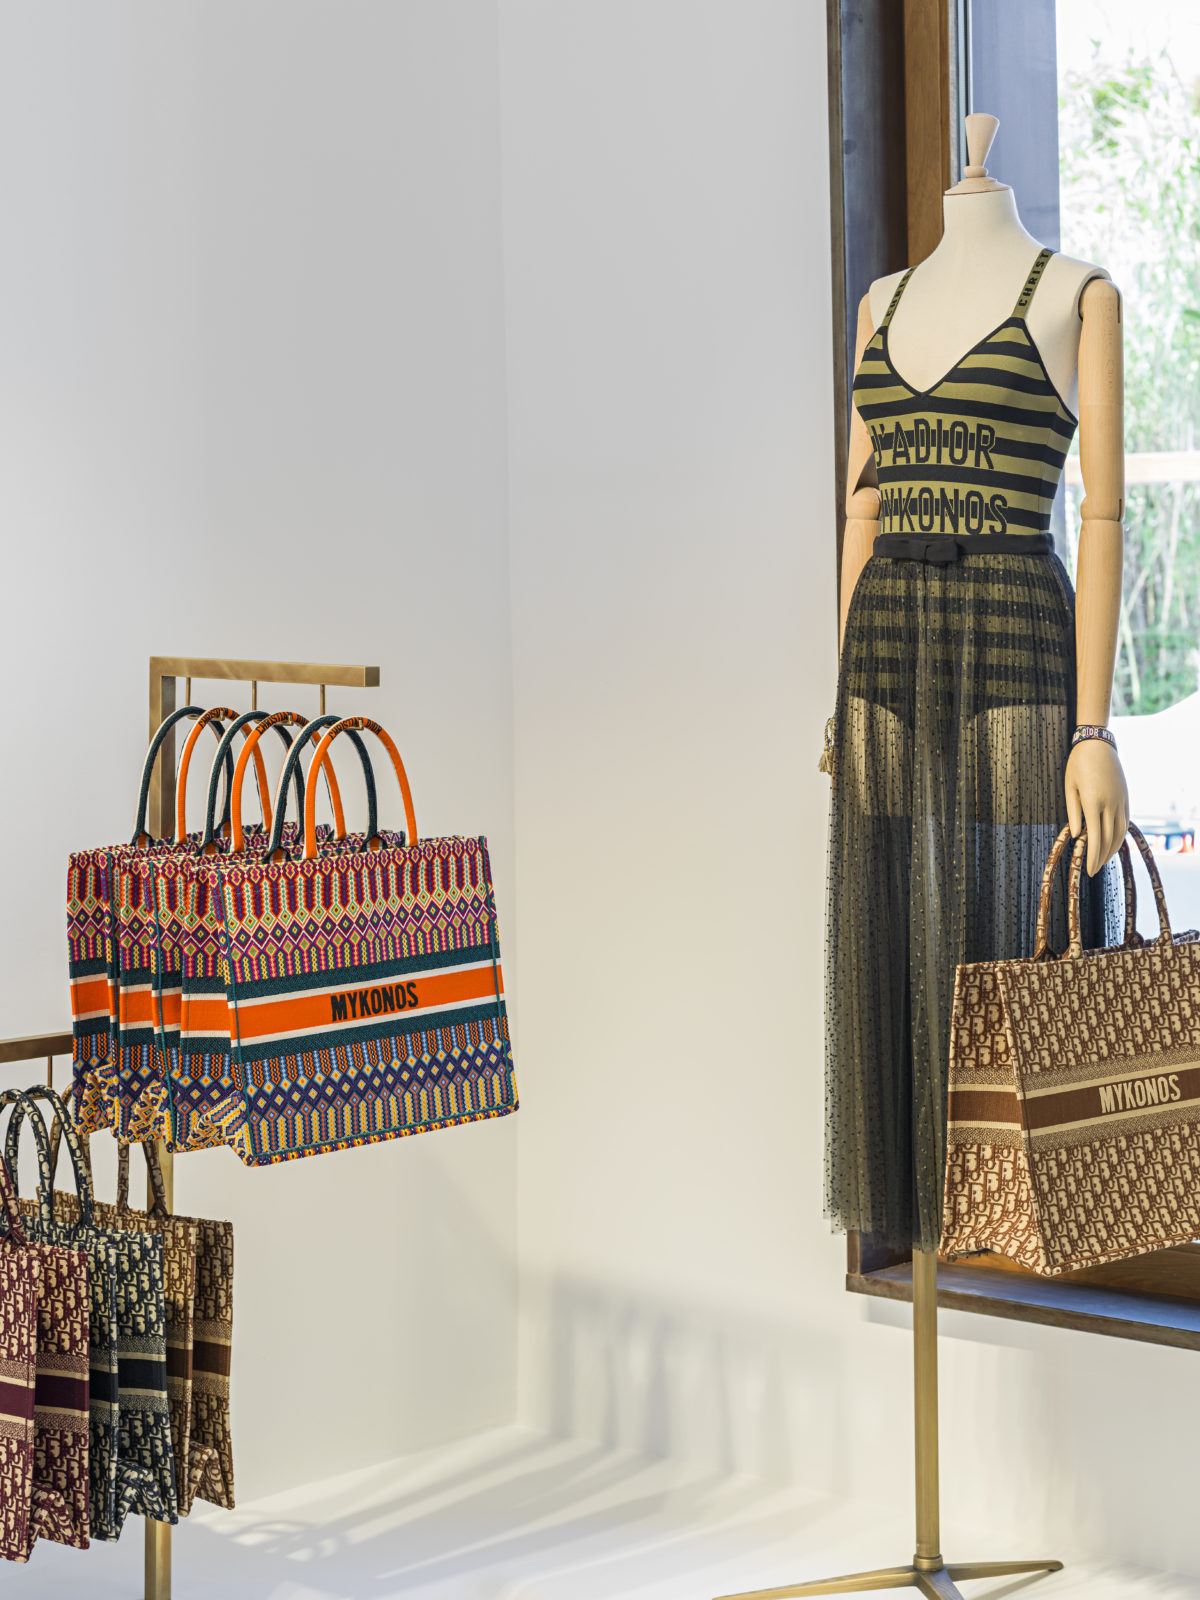 Dior Pop up Mykonos Summer | The Luxe Diary